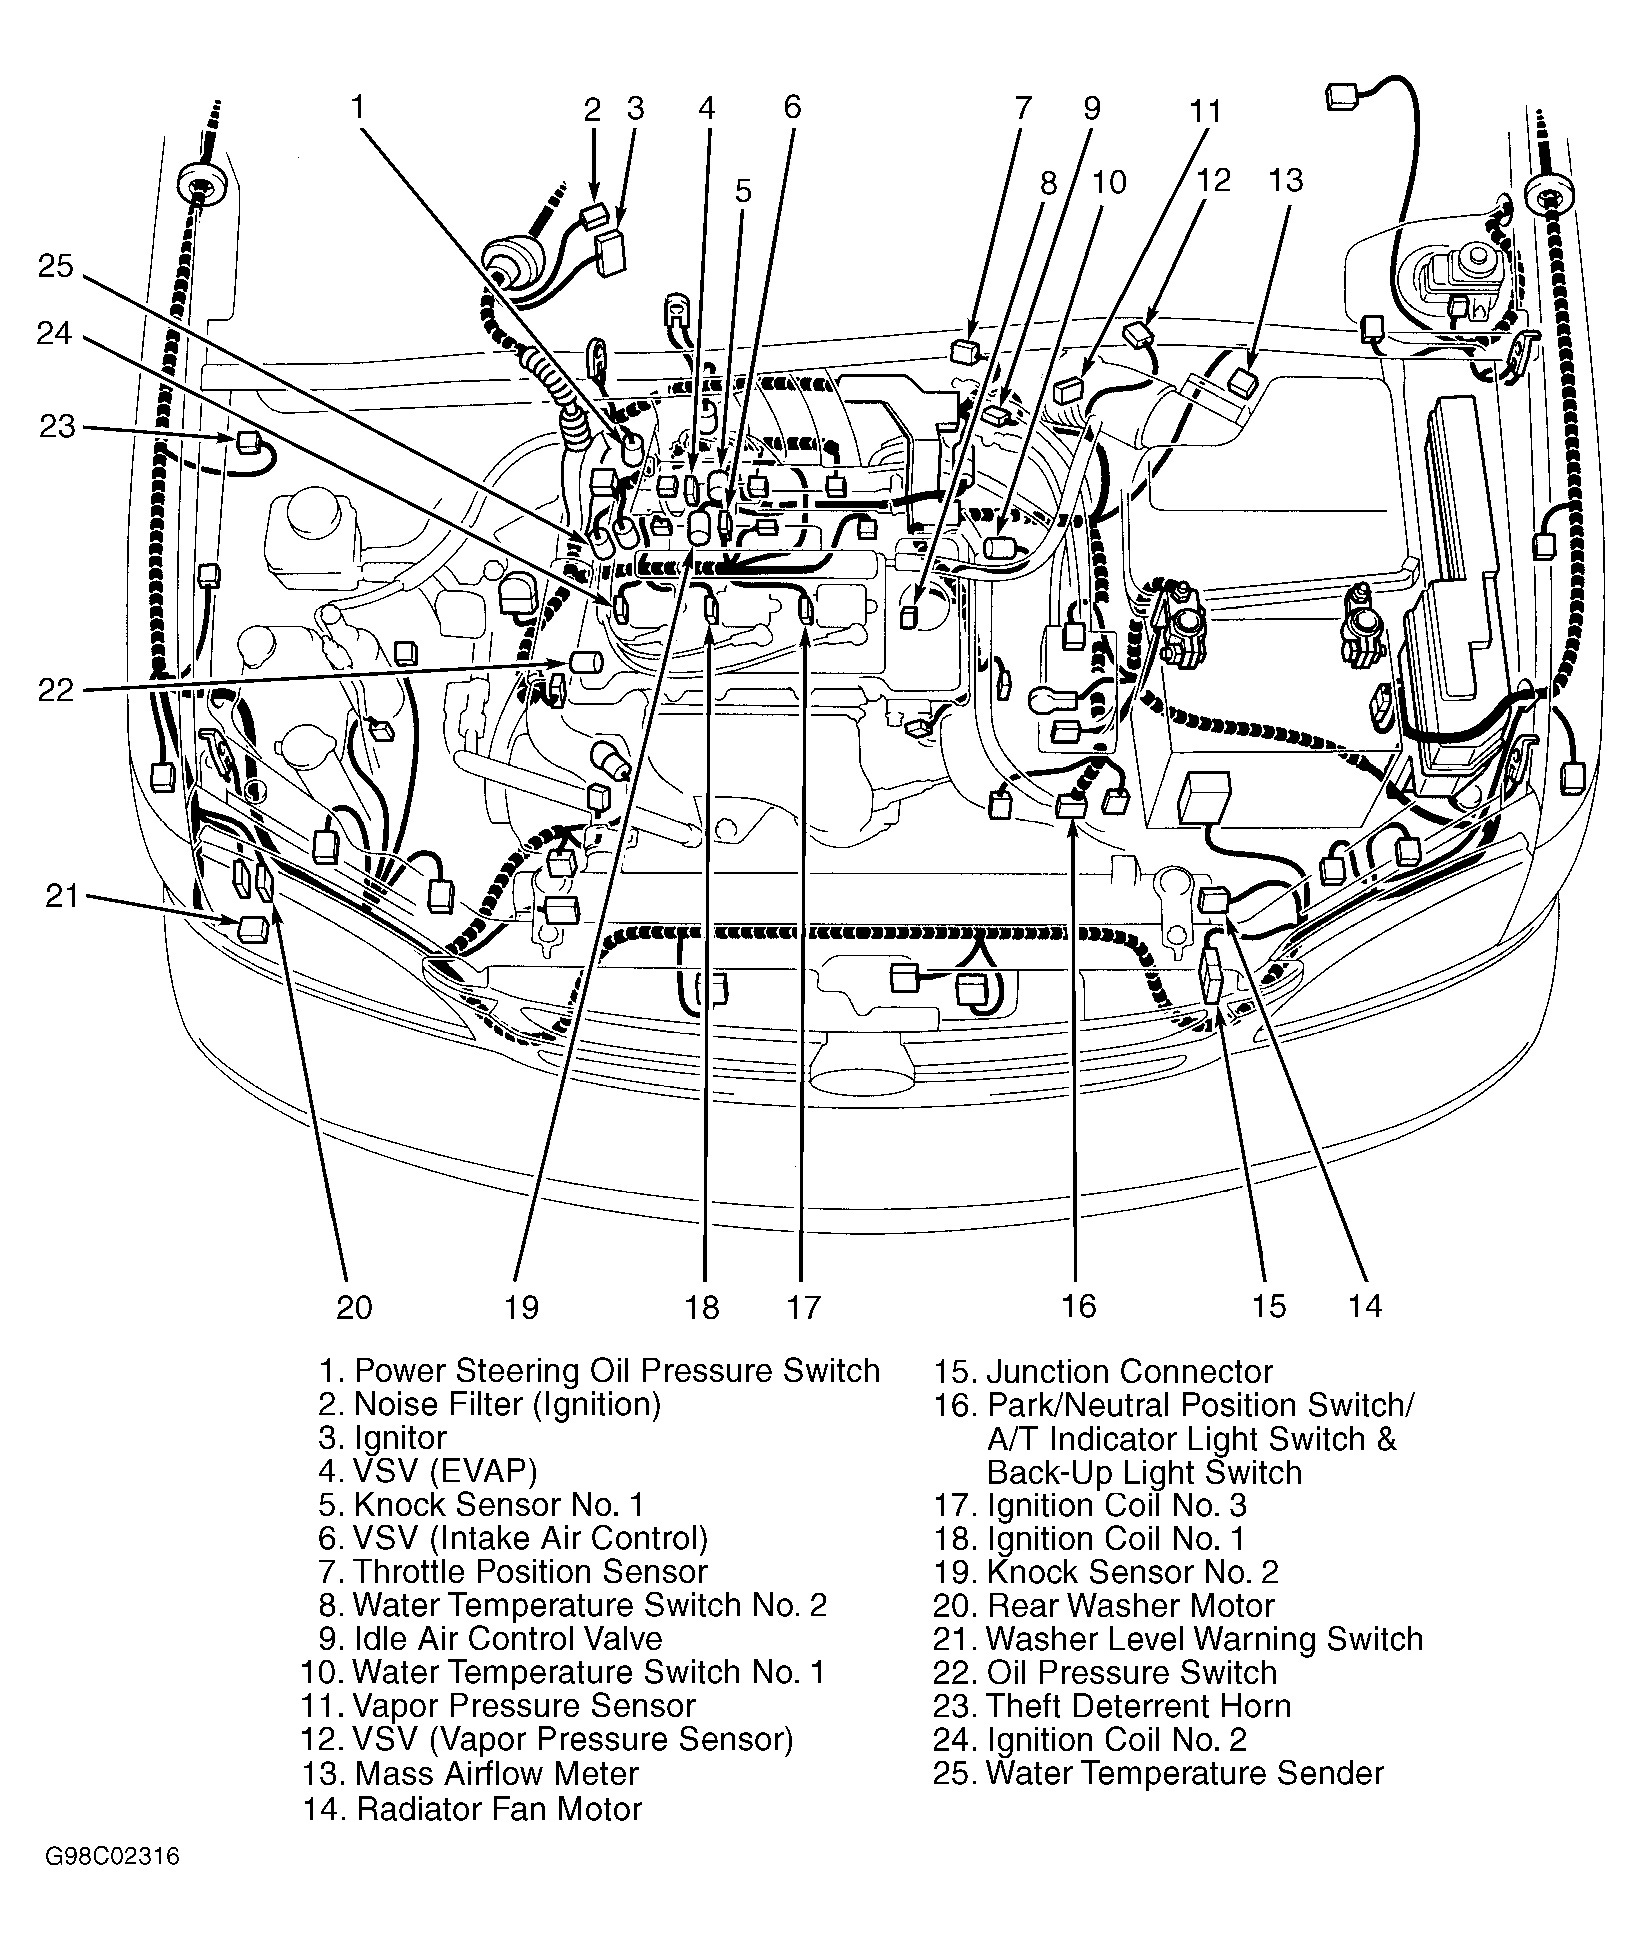 Nn 7556 Toyota Rav4 Under Hood Wiring Diagrams Free Diagram